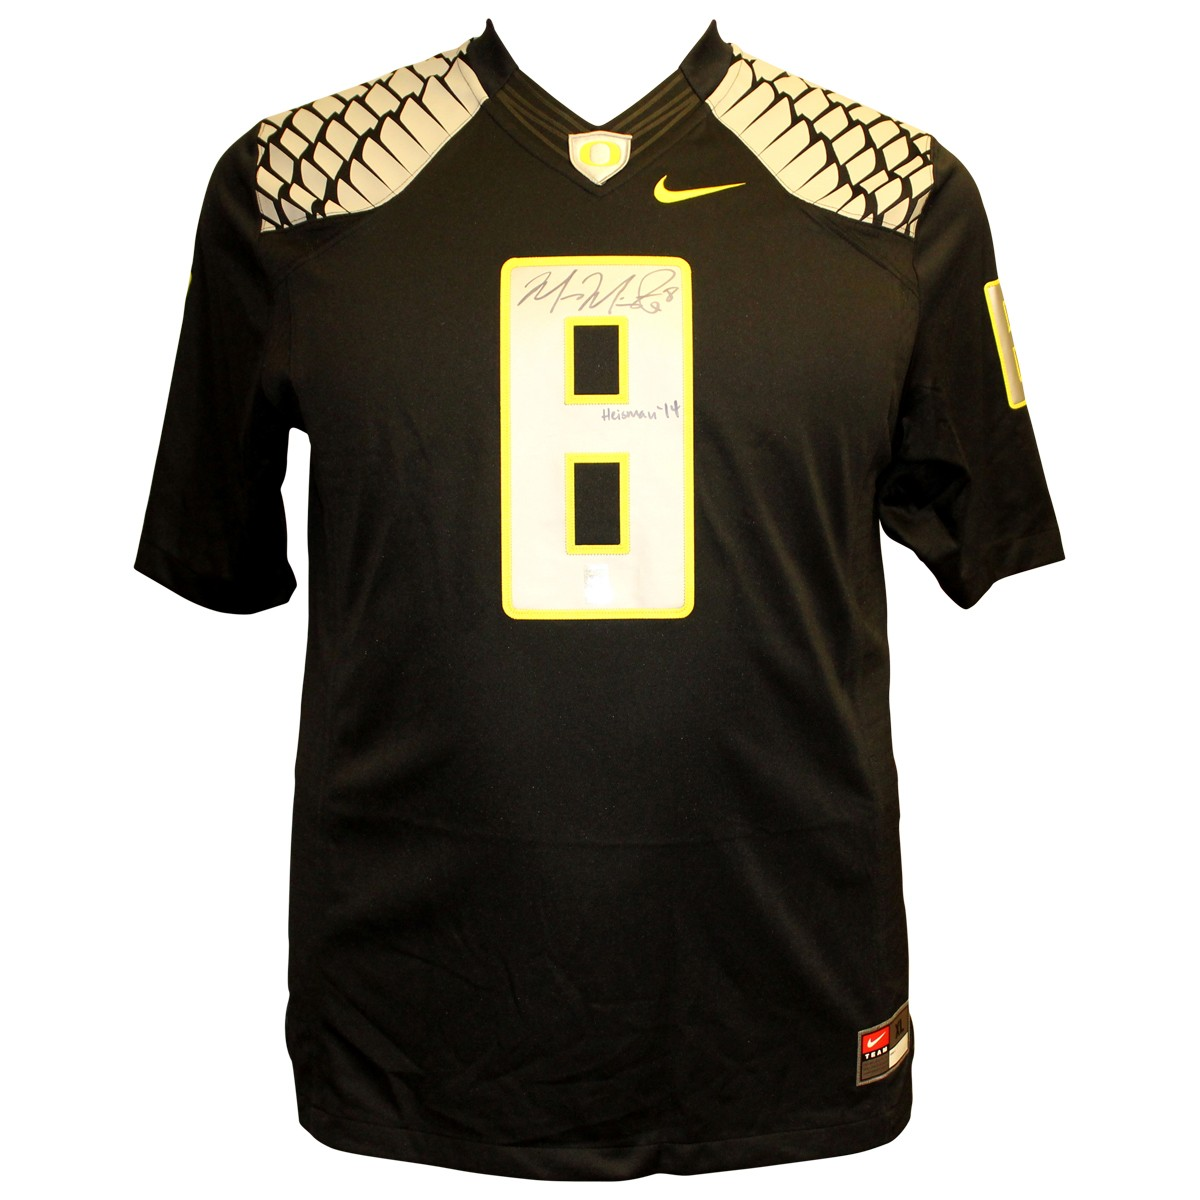 ea254d65ec0 Marcus Mariota Autographed Signed Oregon Ducks Nike On Field Black Jersey  with Silver/Yellow Wings and Numbers - Heisman 14 Inscription - PSA/DNA  Authentic